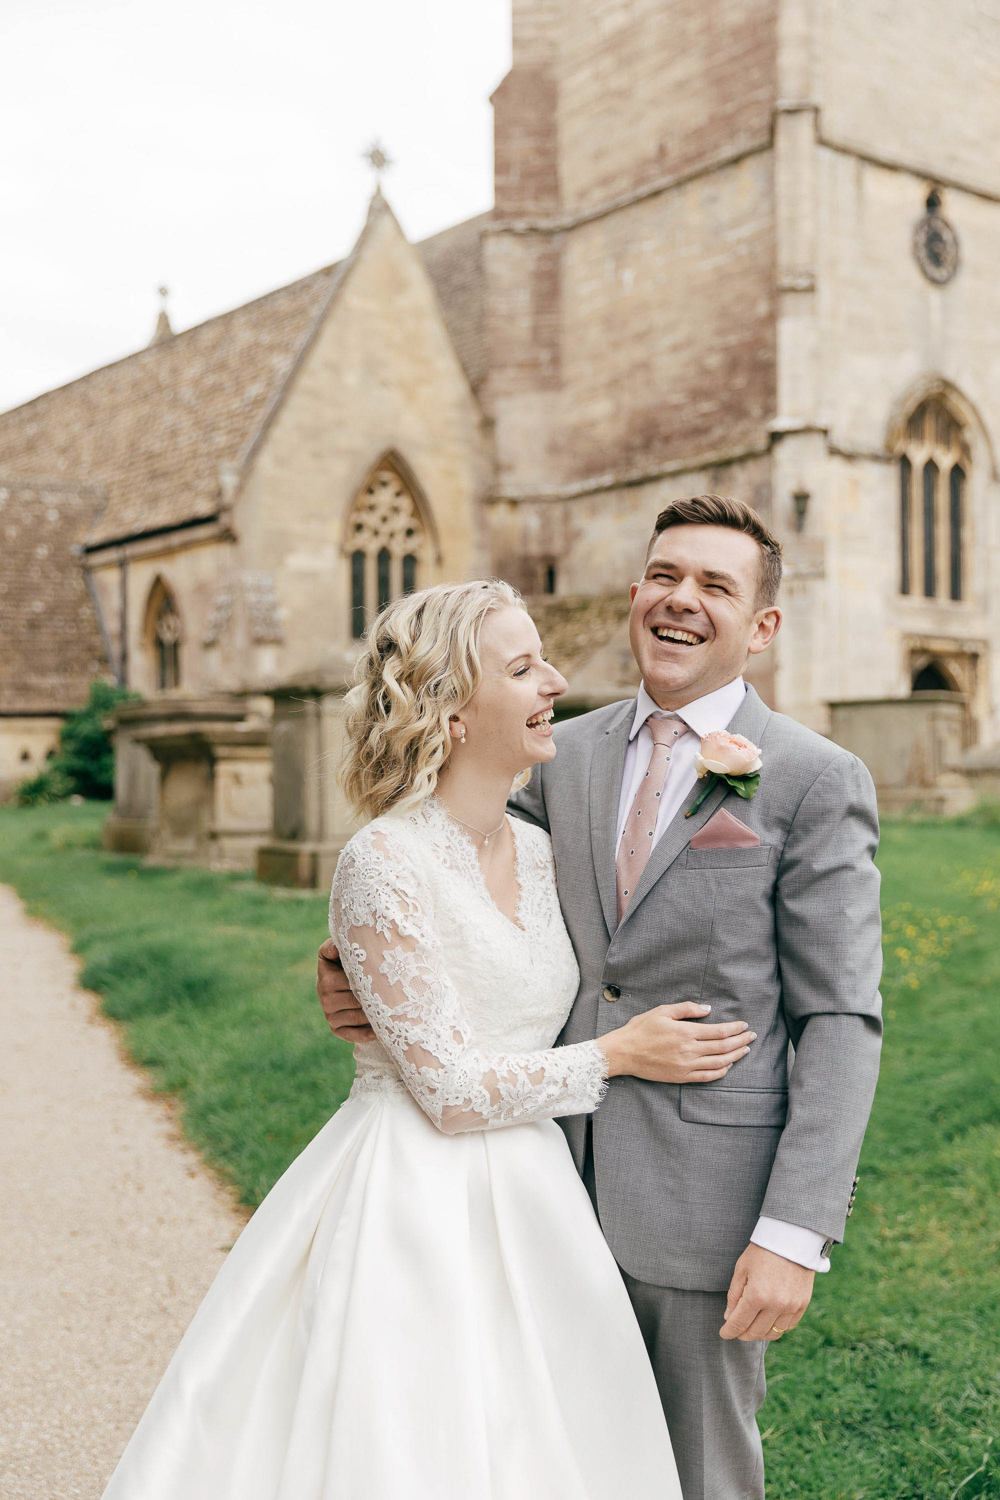 natural wedding photography at cotswold church wedding